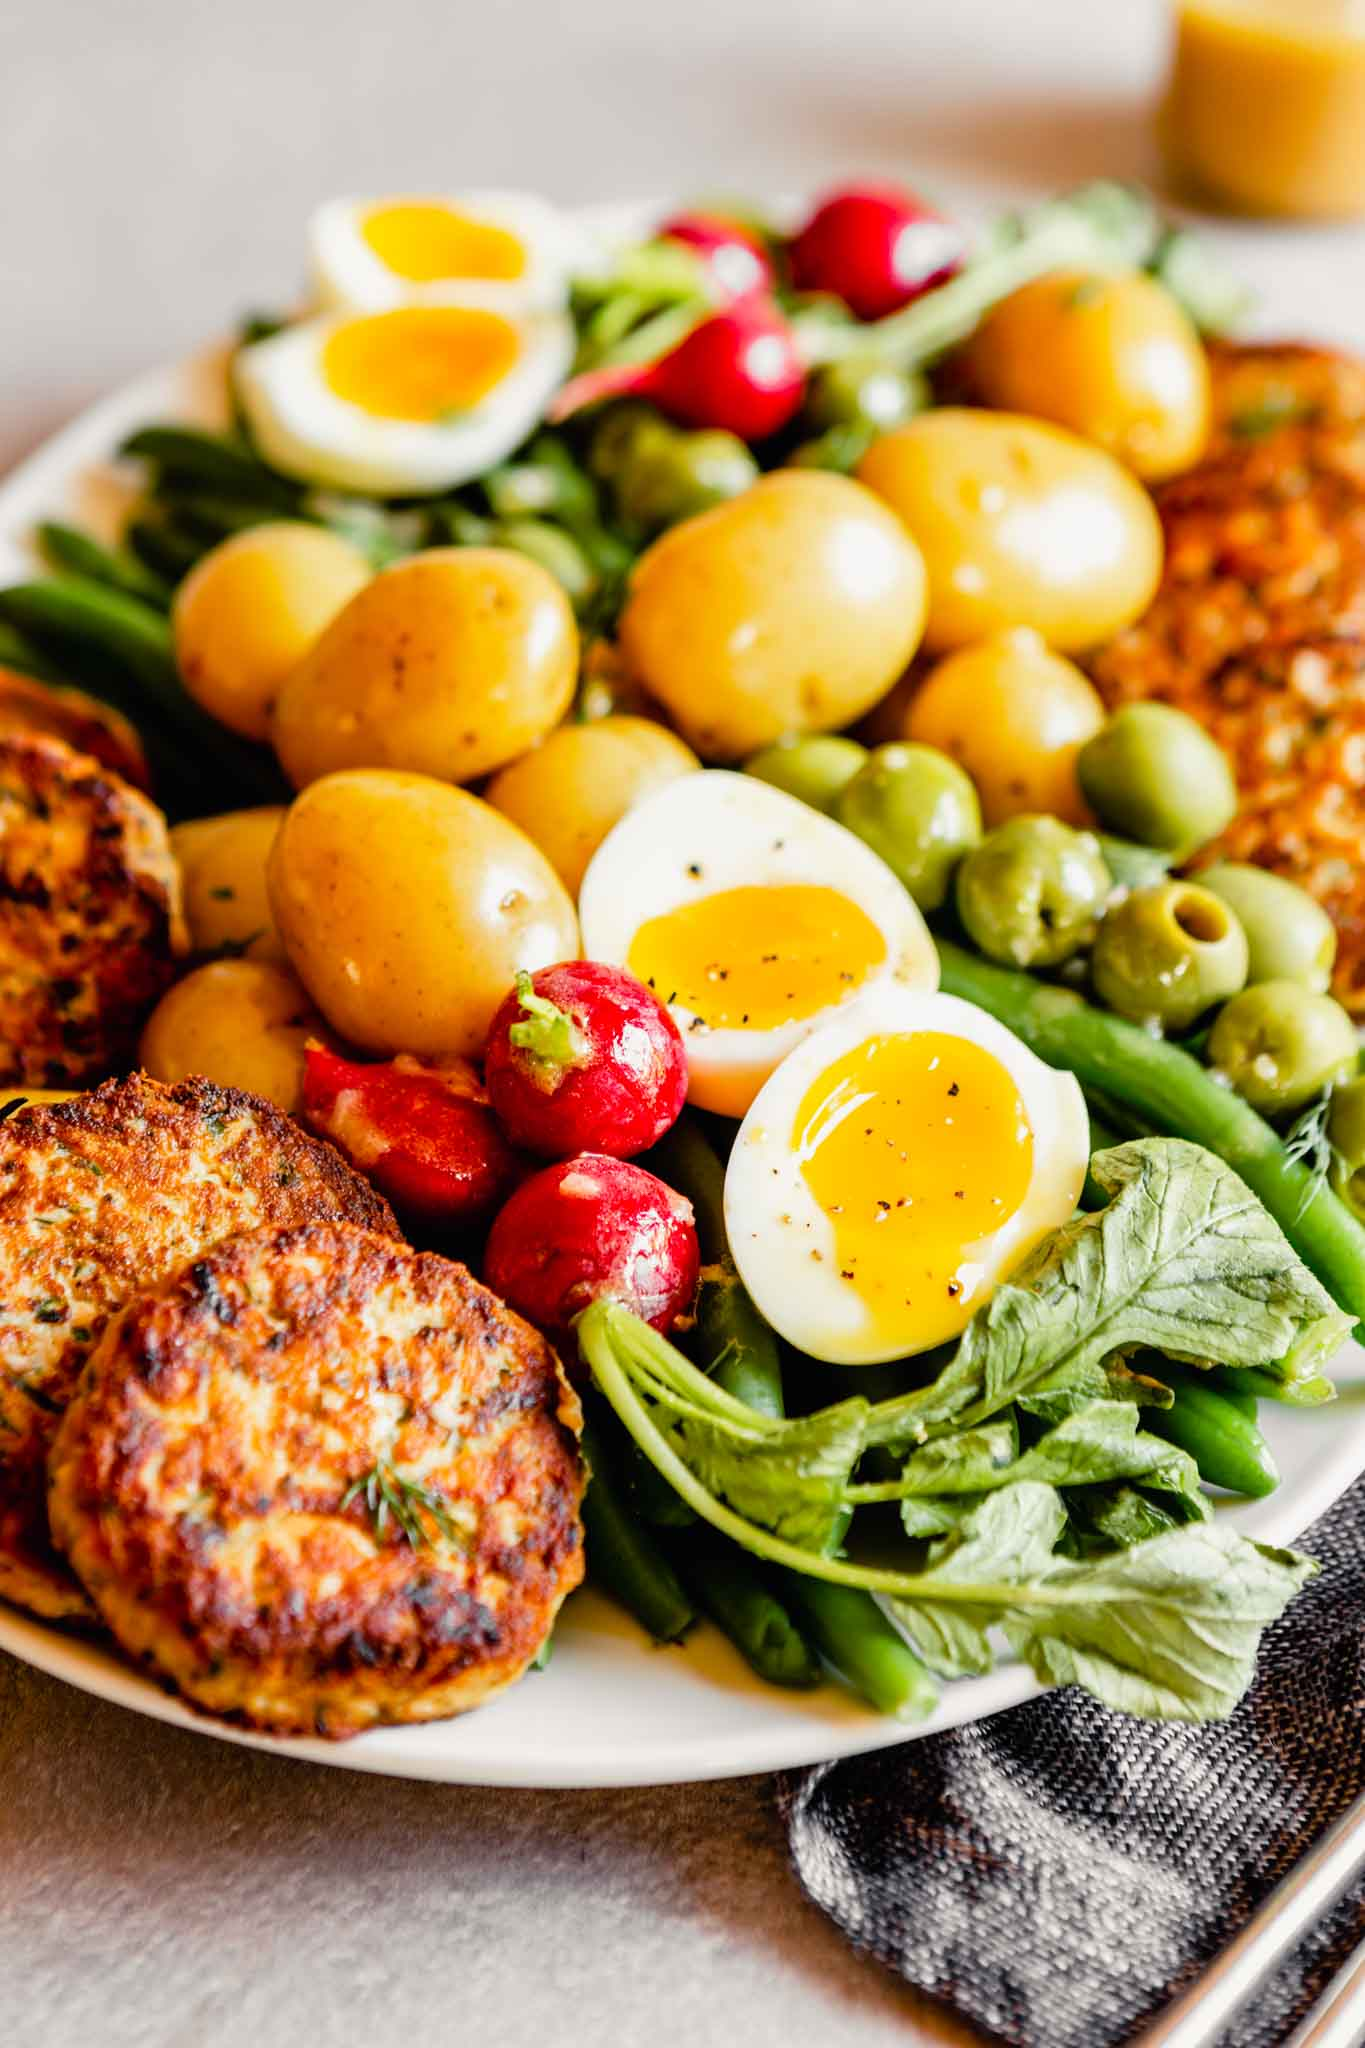 Side angle of a nicoise salad on a white oval plate. Focused on soft boiled eggs and salmon patties.